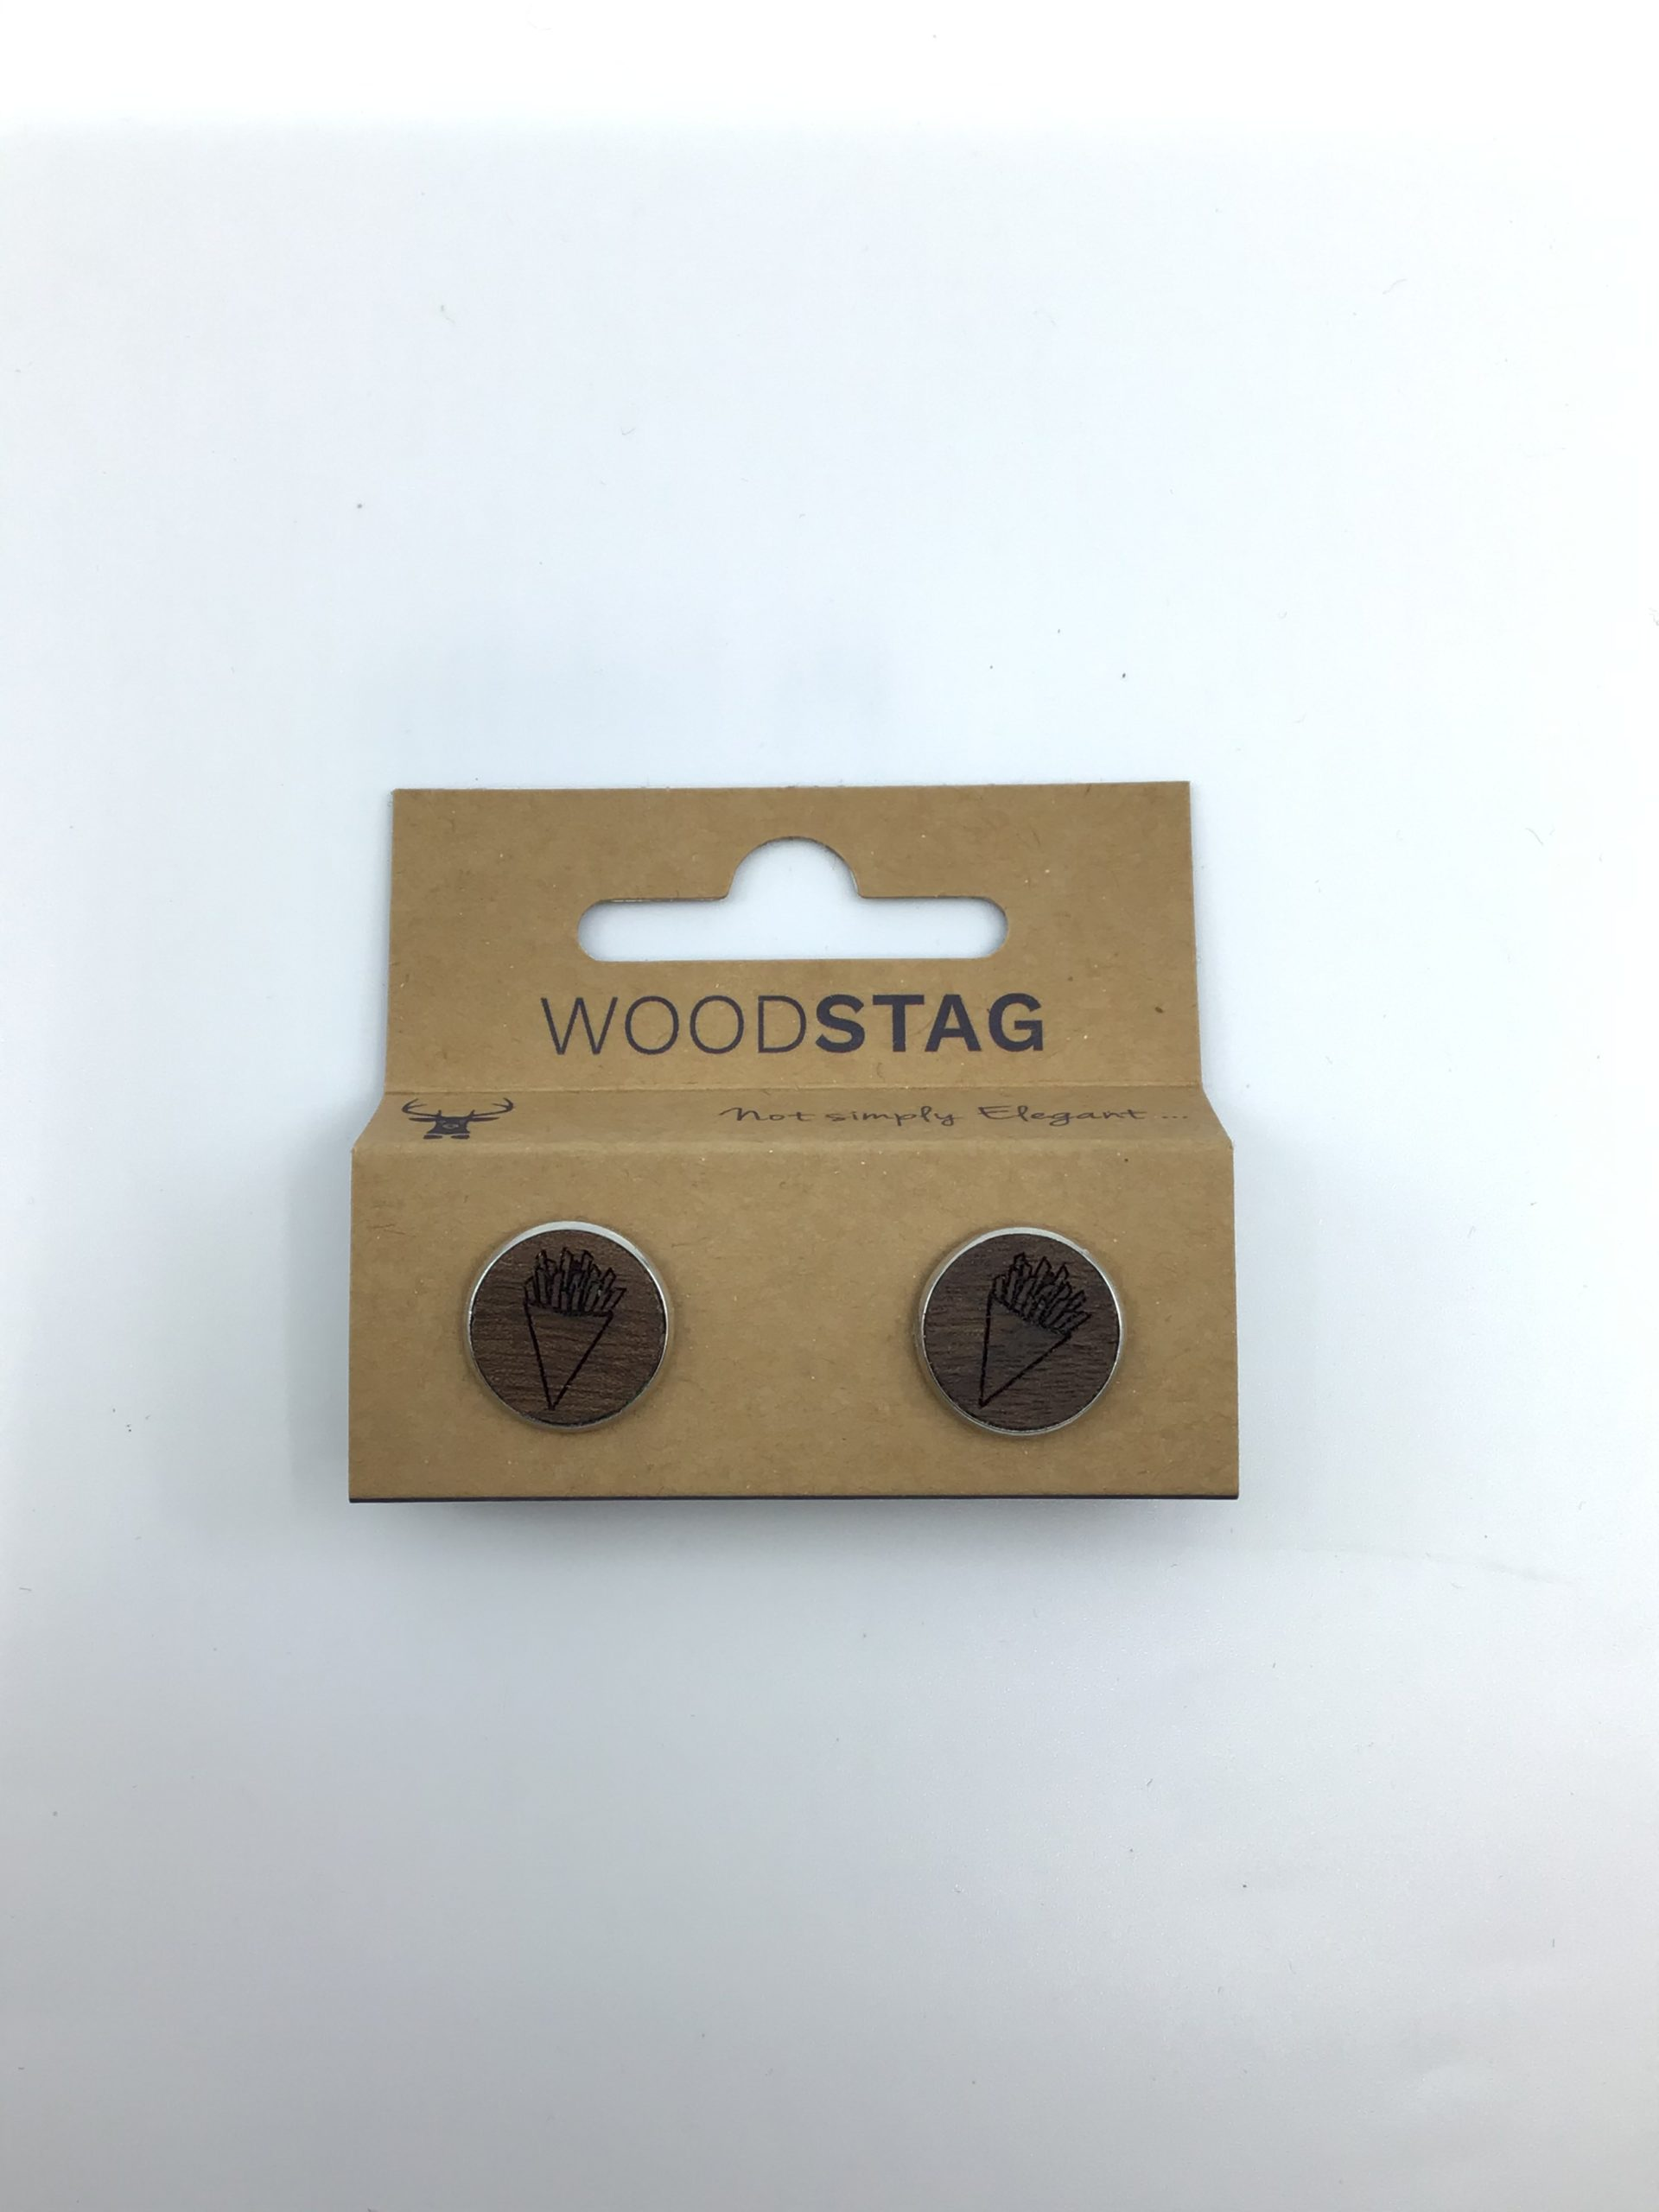 Woodstag